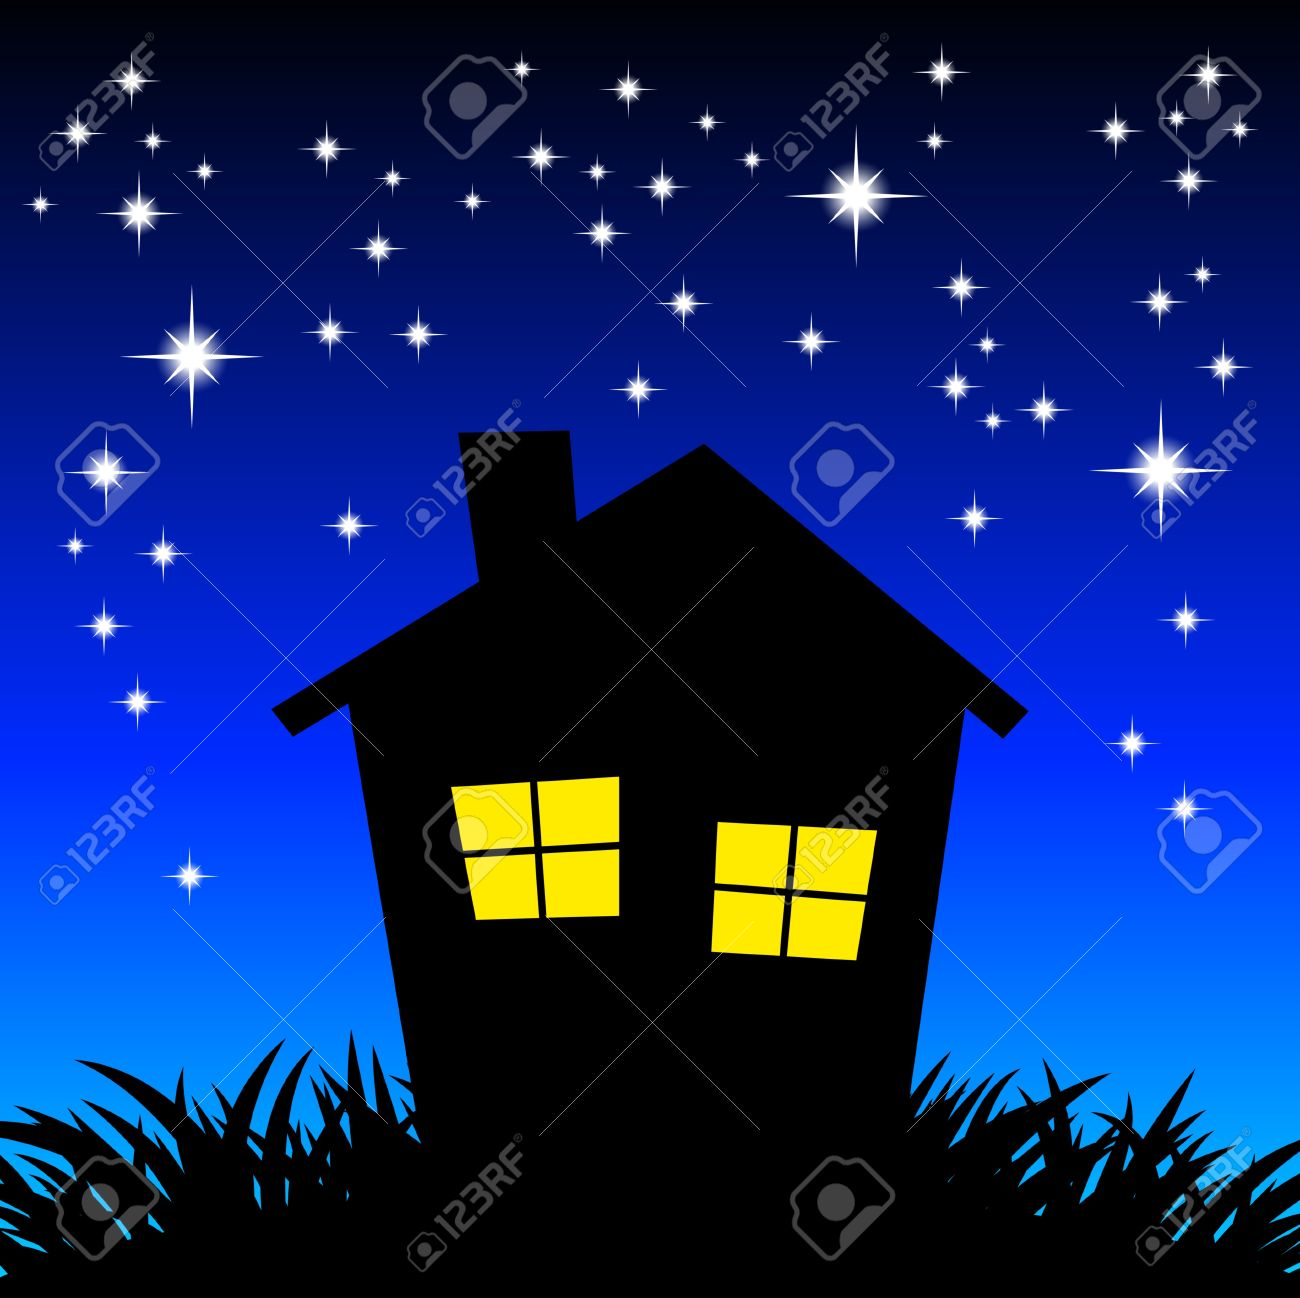 Night clipart  at Clip Clipart Images